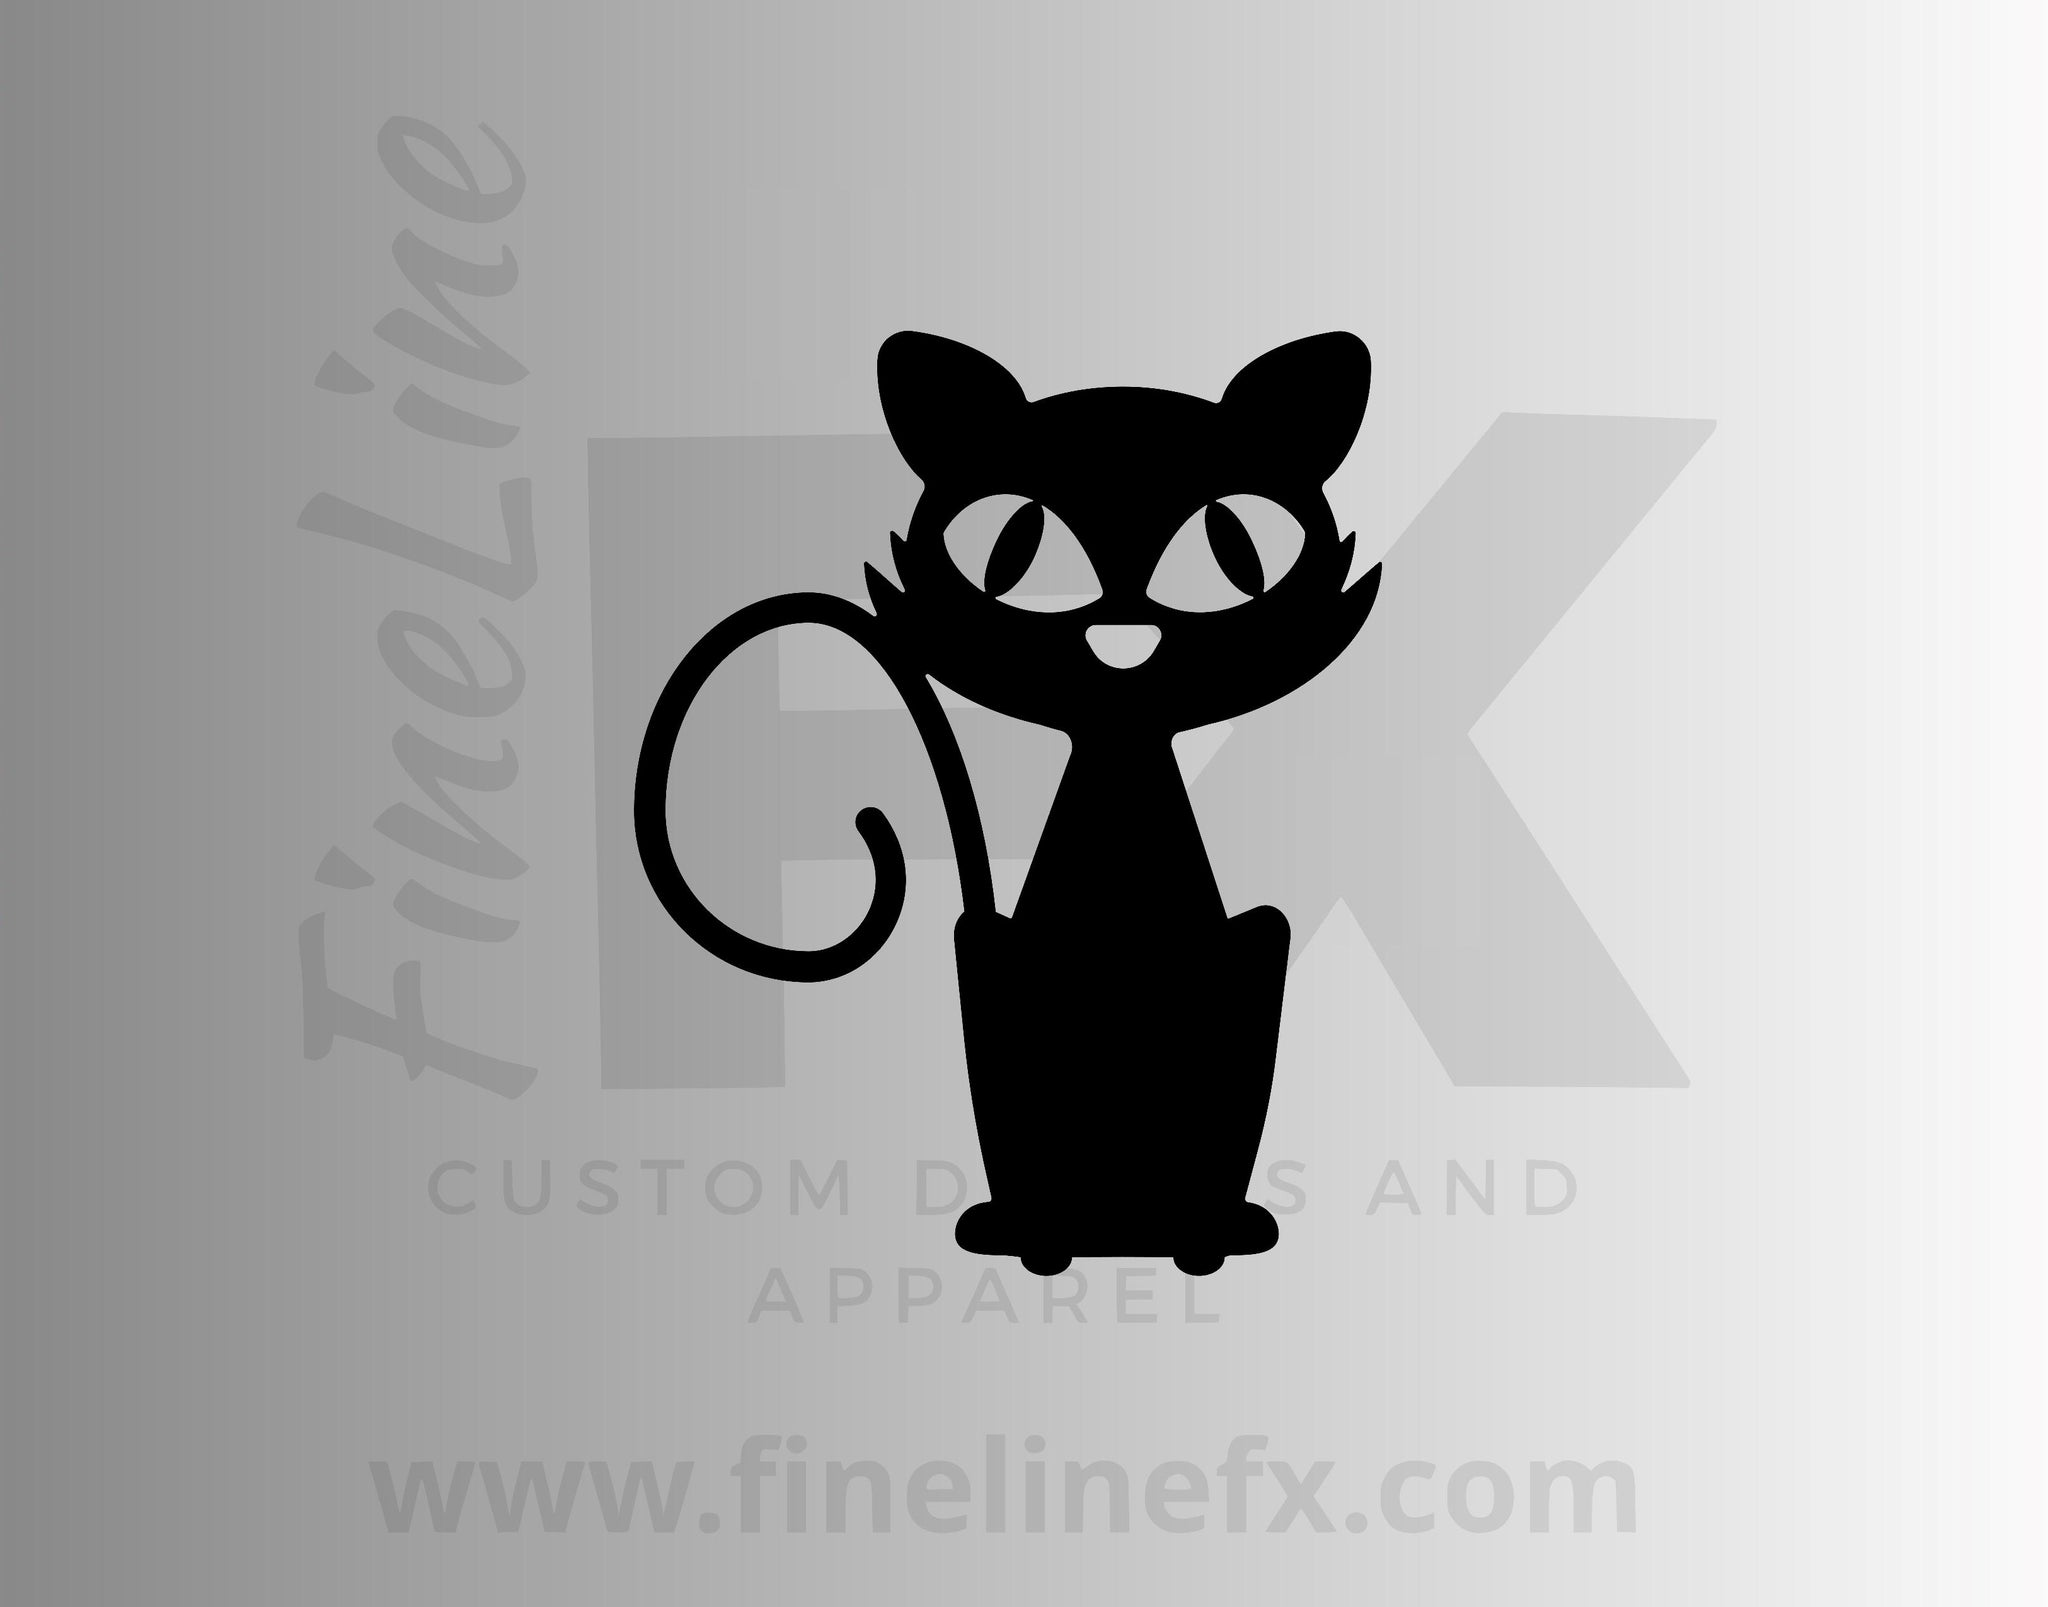 Cute Halloween Black Cat Vinyl Decal Sticker